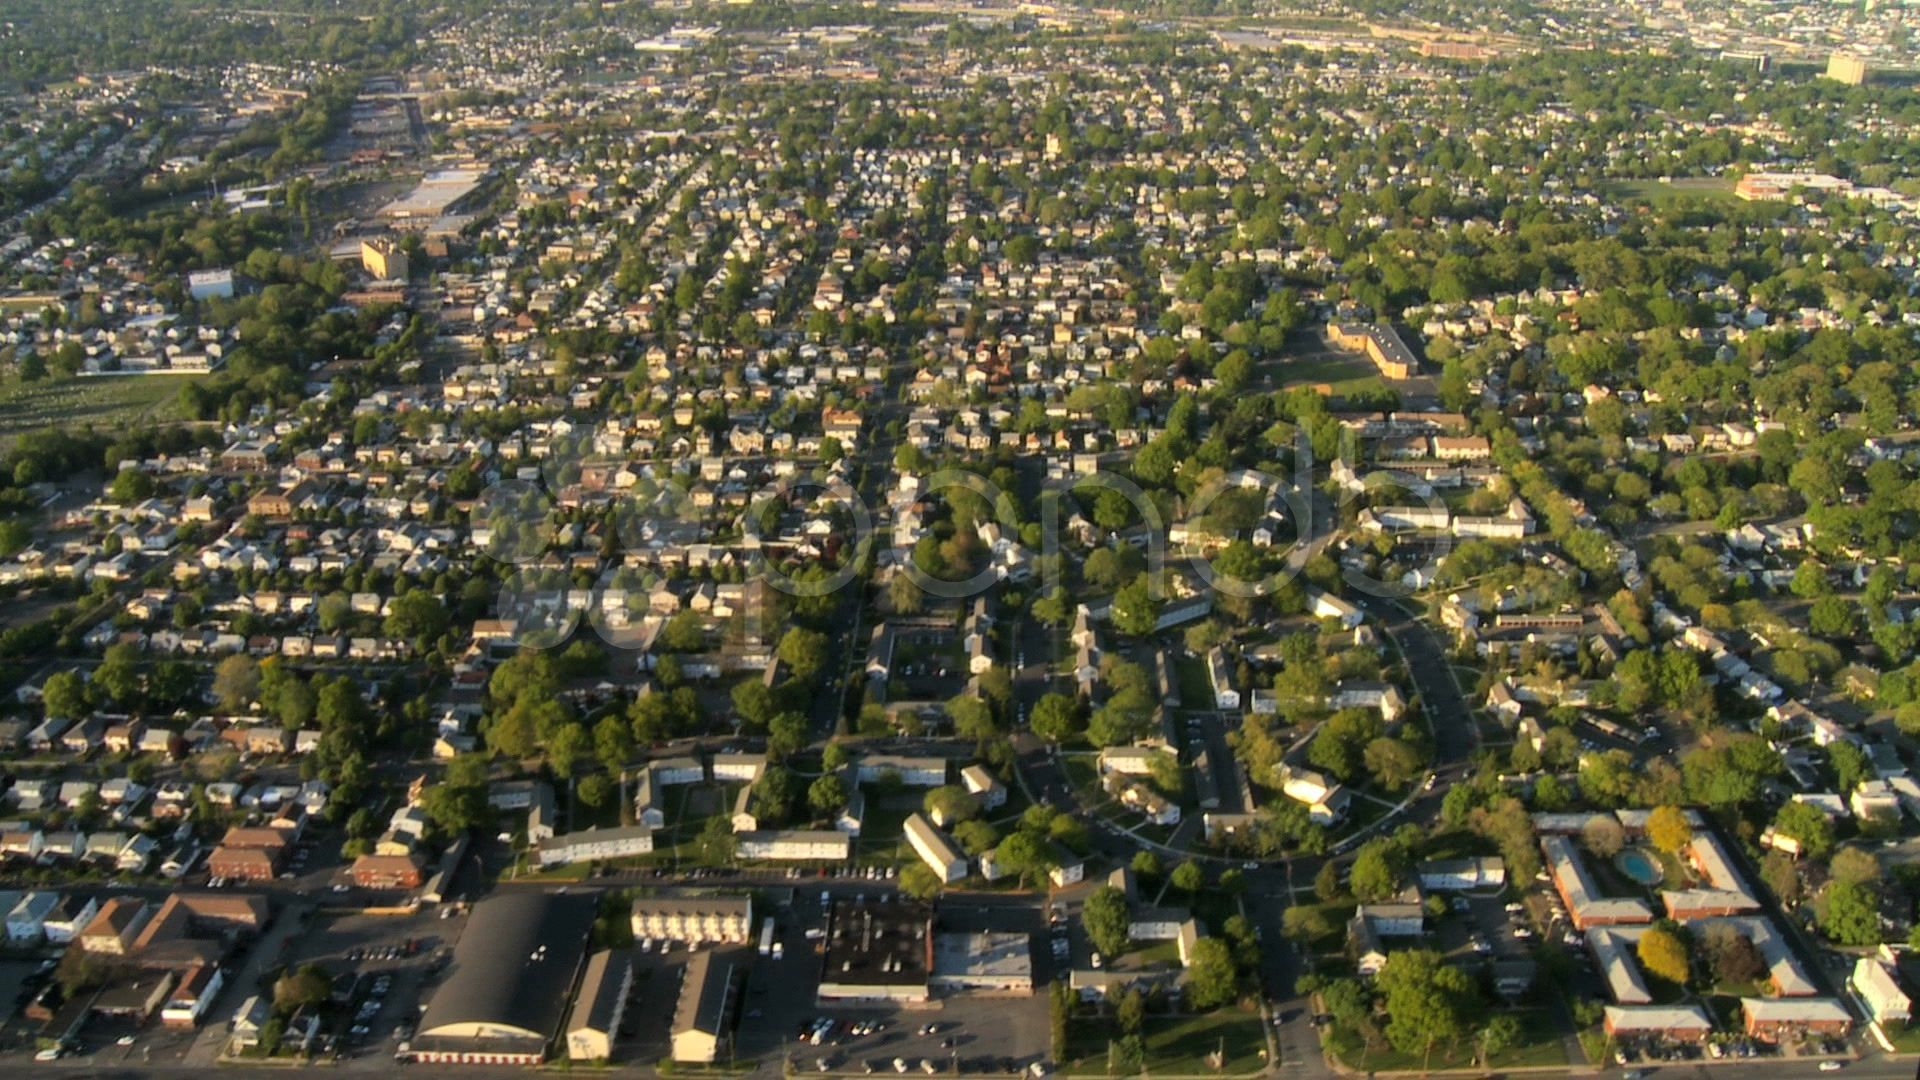 Aerial View Of New Jersey And Suburbs New York State Ny Usa Stock Footage Suburbs York Jersey Aerial Aerial View Aerial New York State